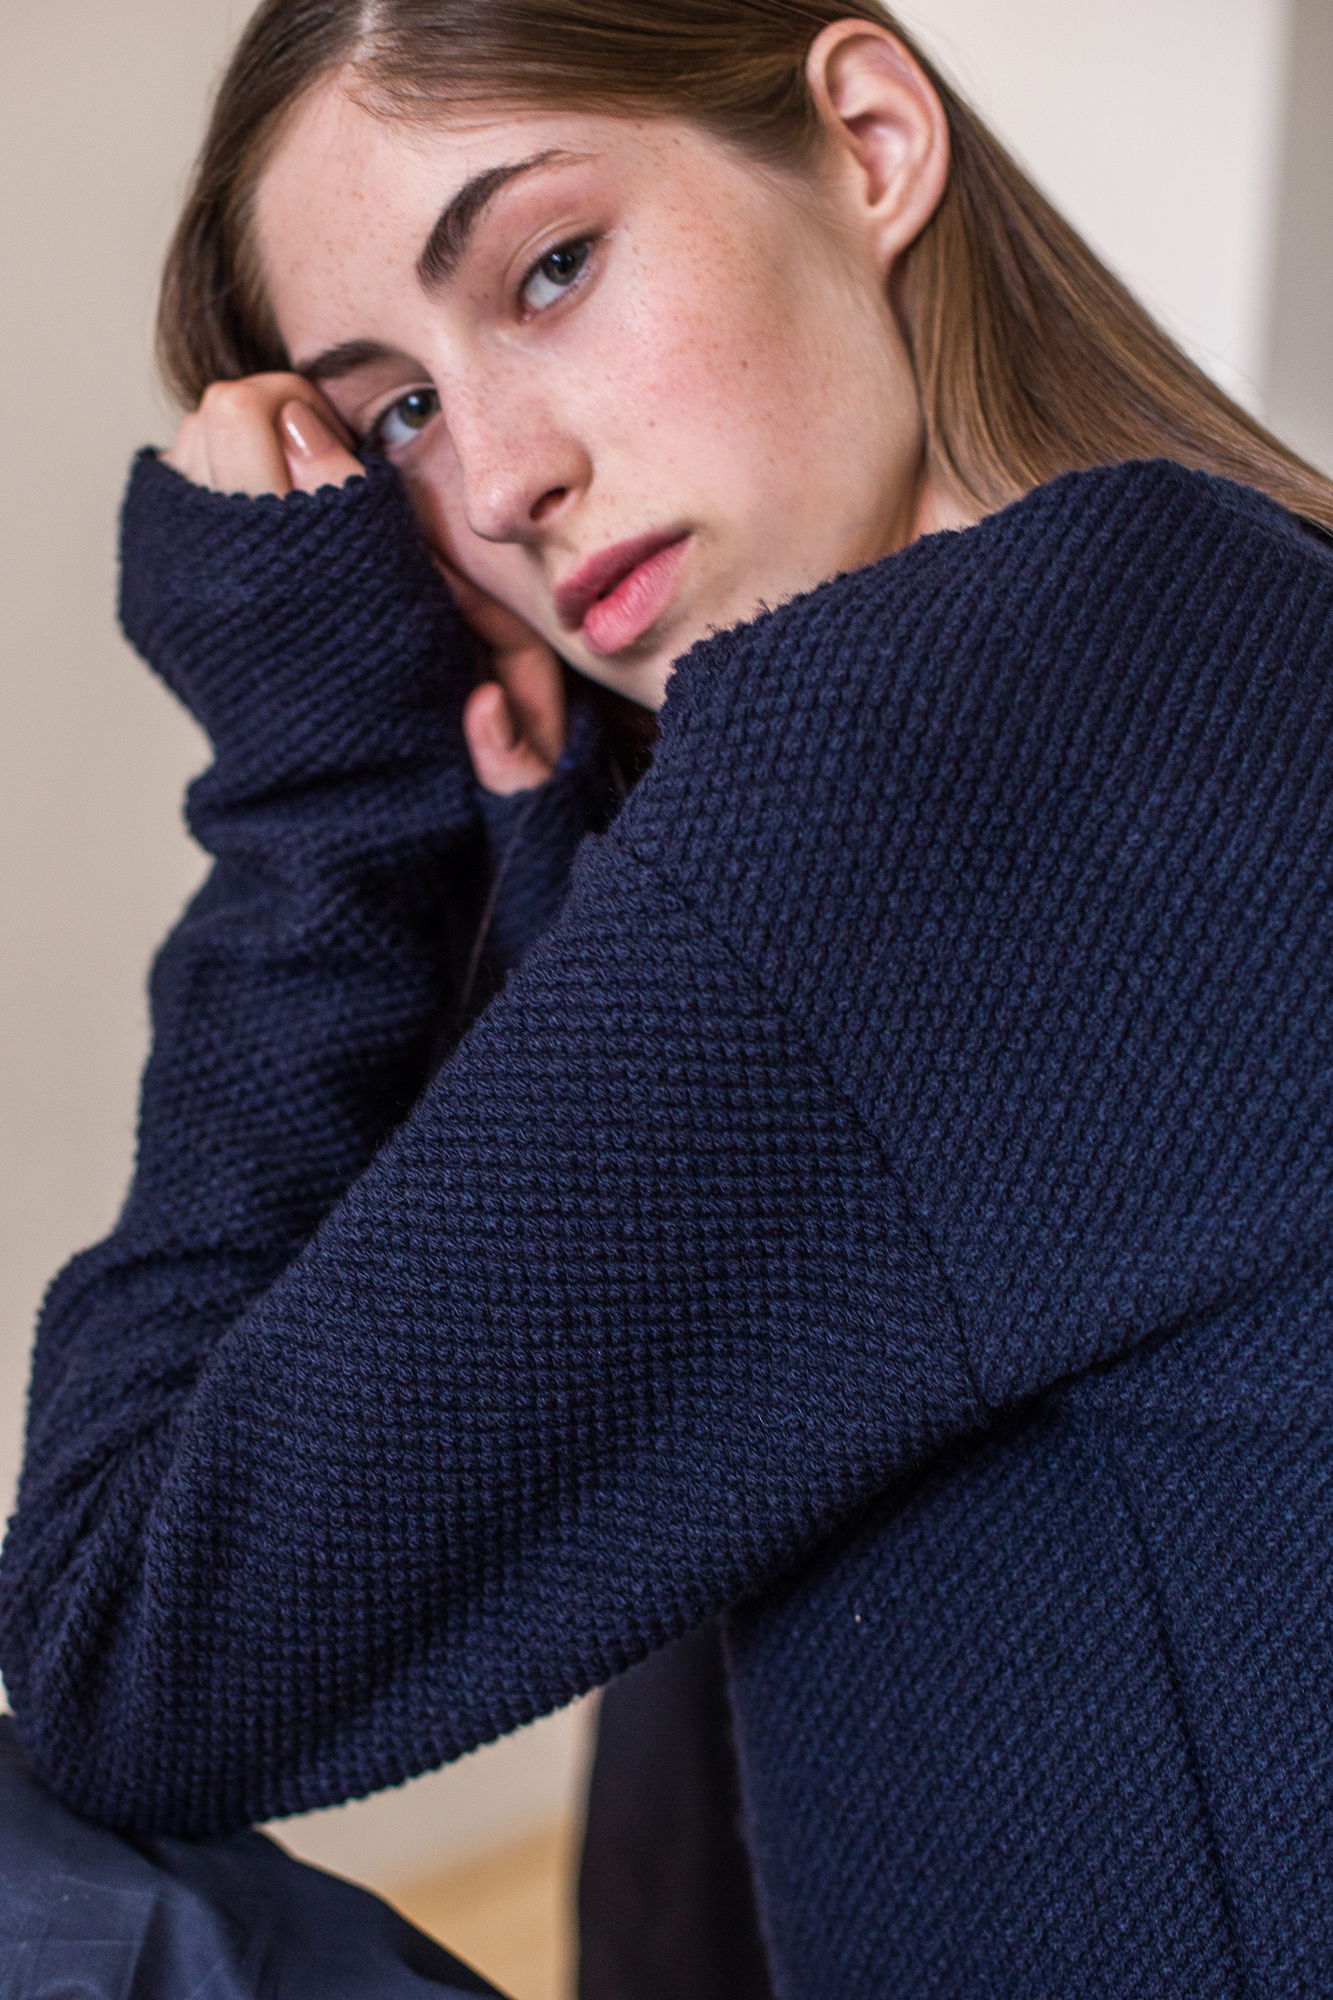 wearenotsisters_wrns_surveyor-sweater_05